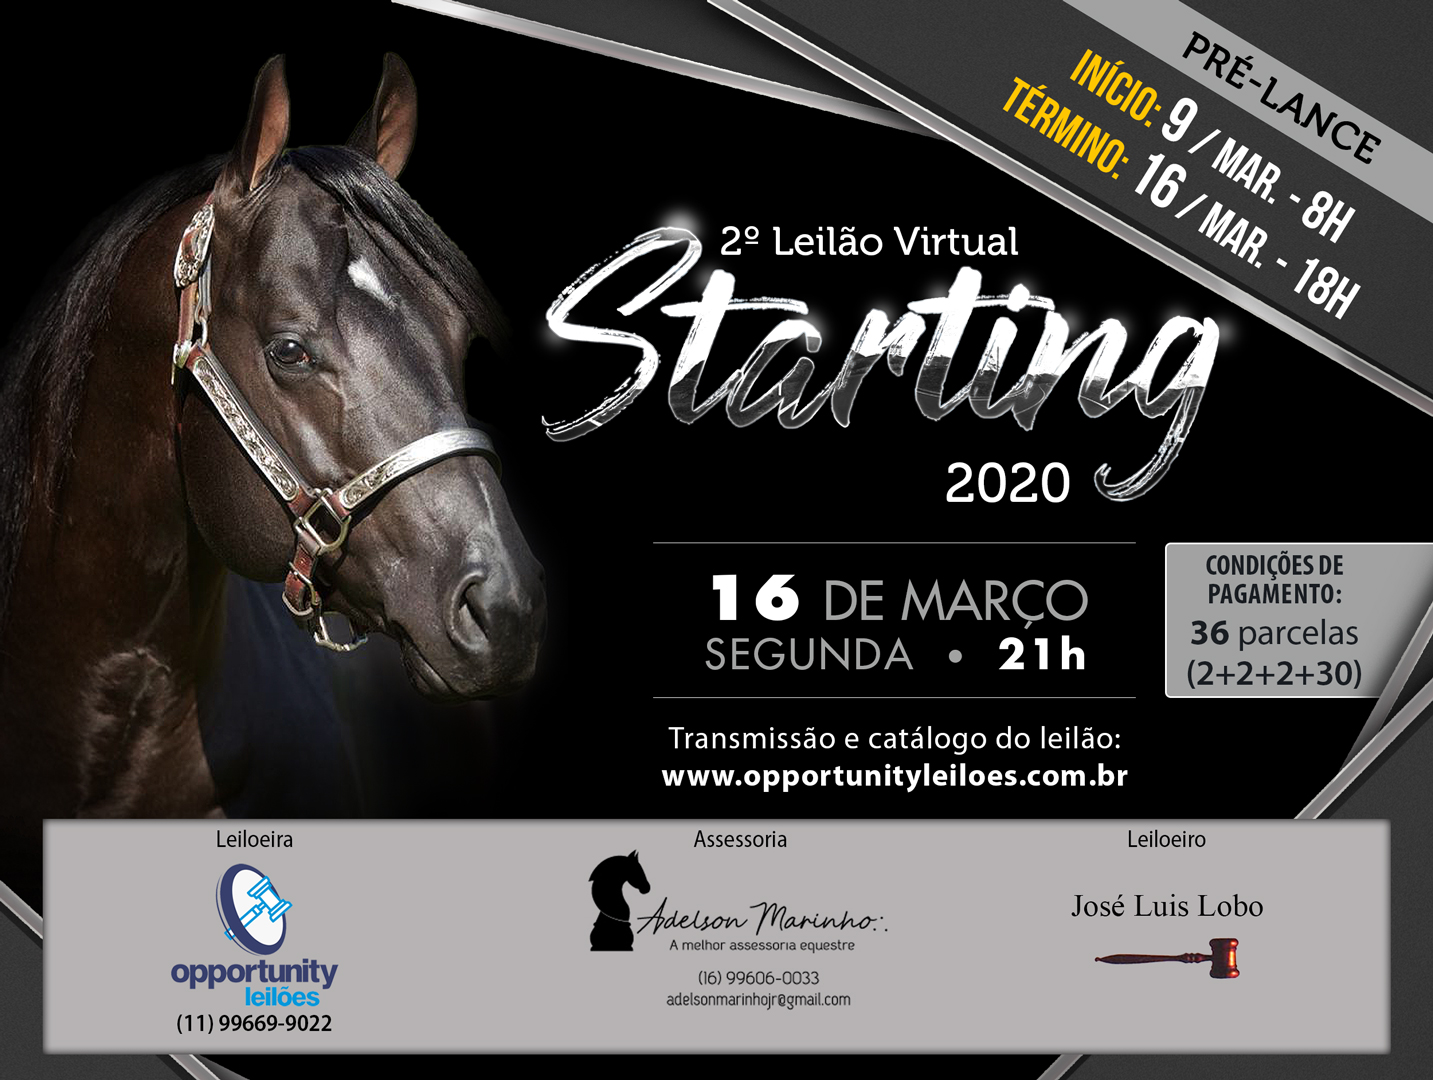 2º LEILÃO VIRTUAL STARTING 2020